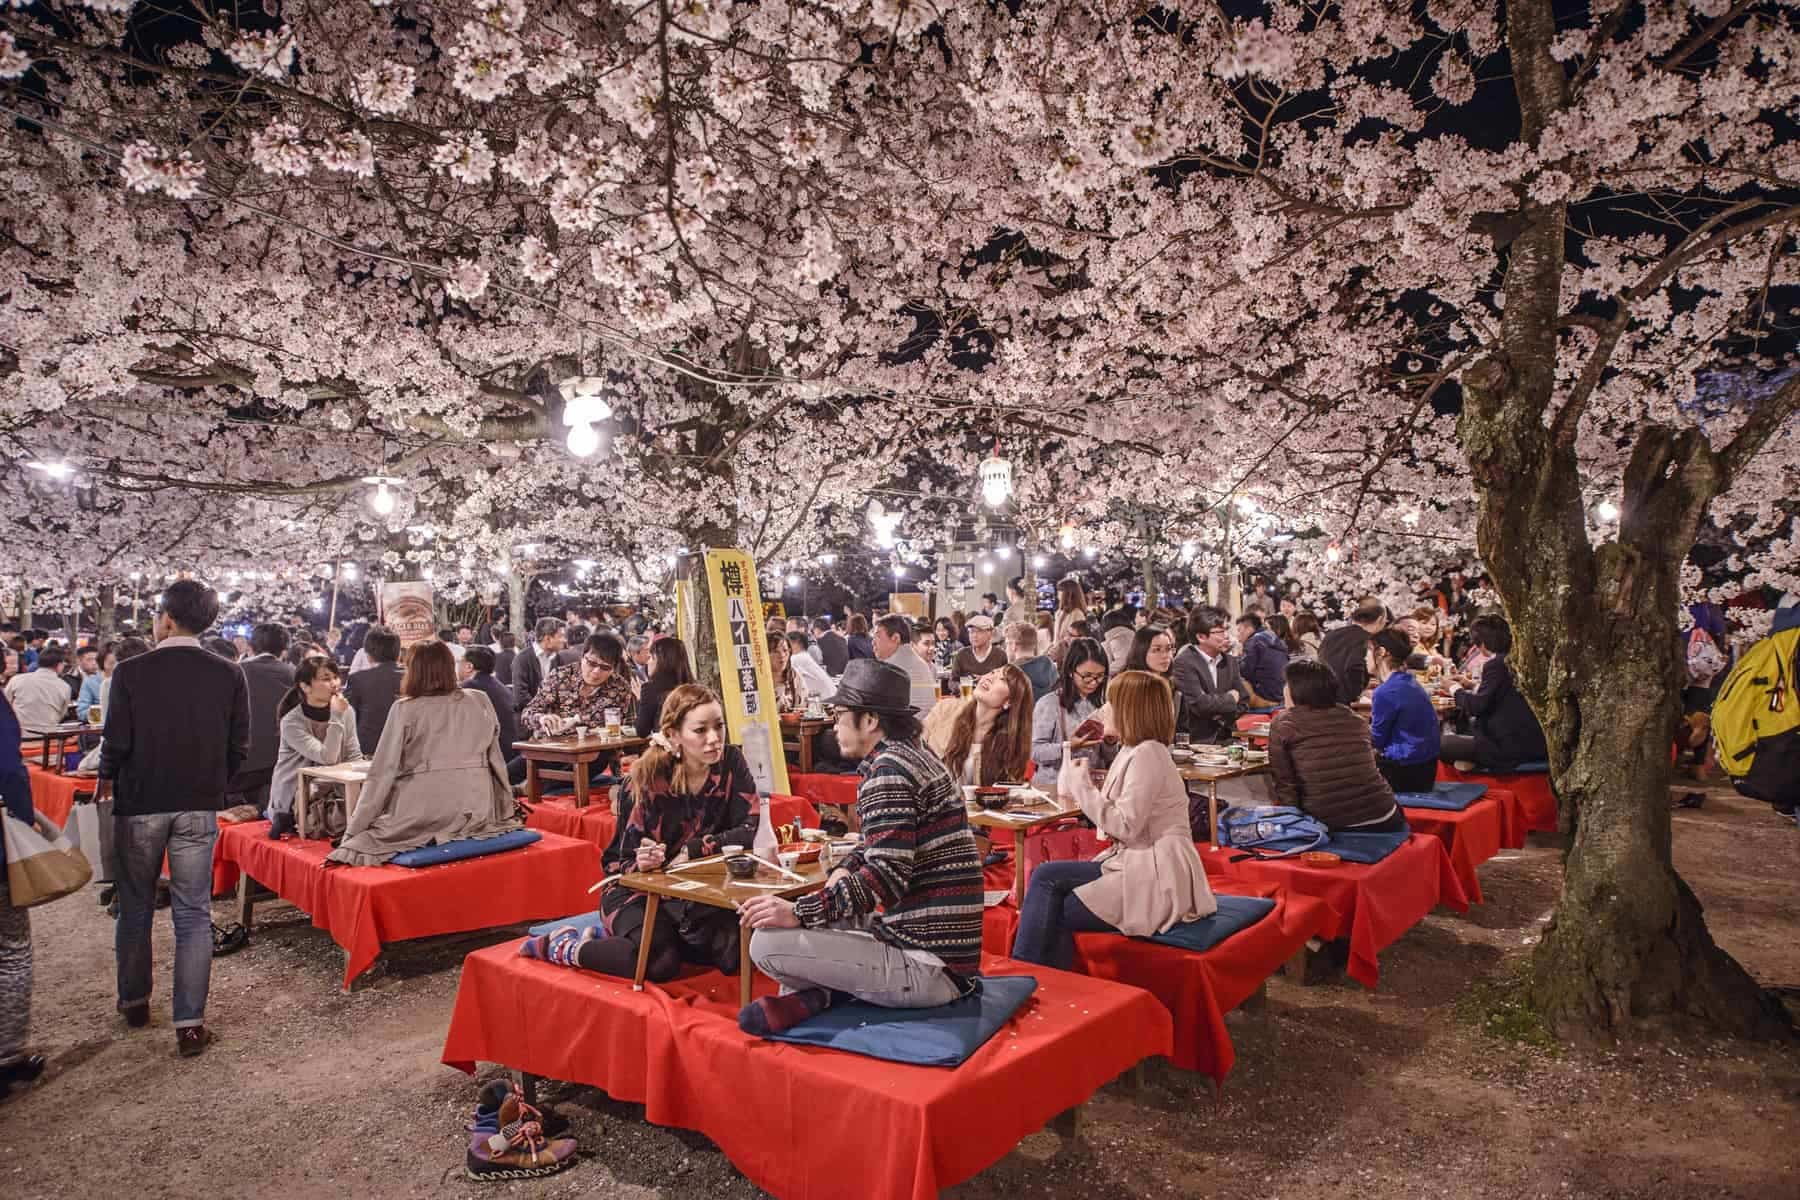 KYOTO, JAPAN People enjoy the spring season by partaking in nighttime Hanami festivals. The annual festivals coincide with the seasonal blooming of the cherry blossoms.